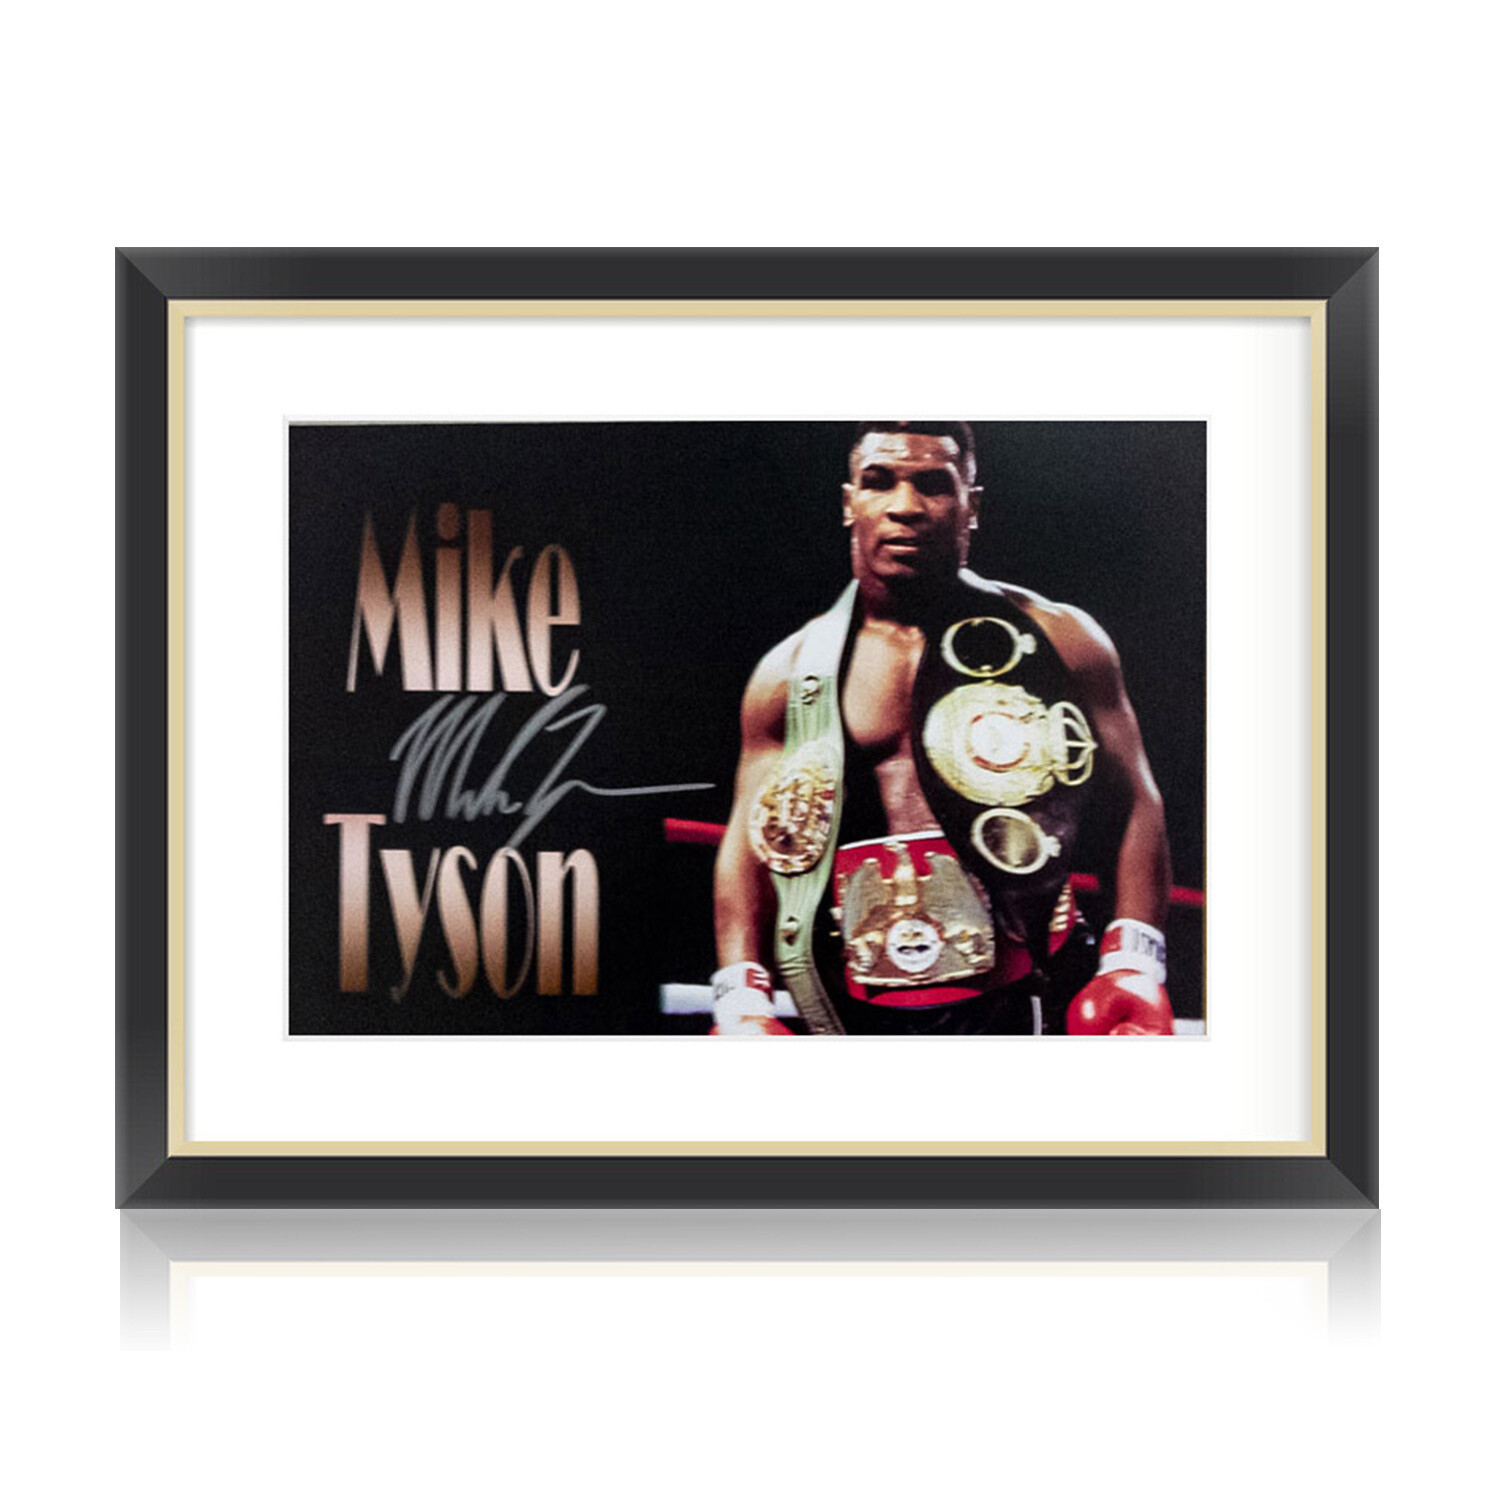 Mike Tyson Graphic Signed & Framed Print